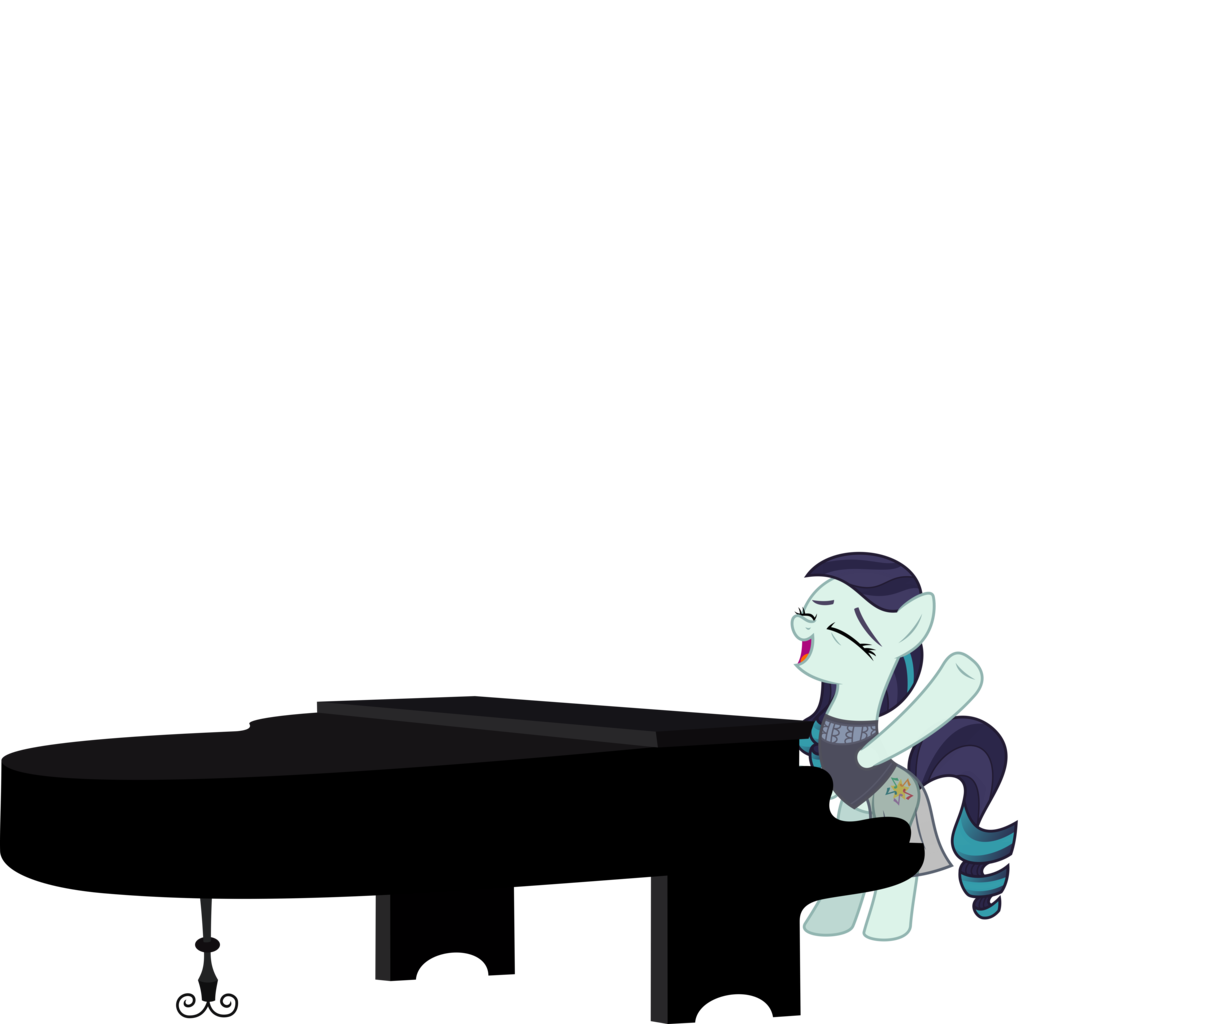 Piano svg simple. Absurd res artist